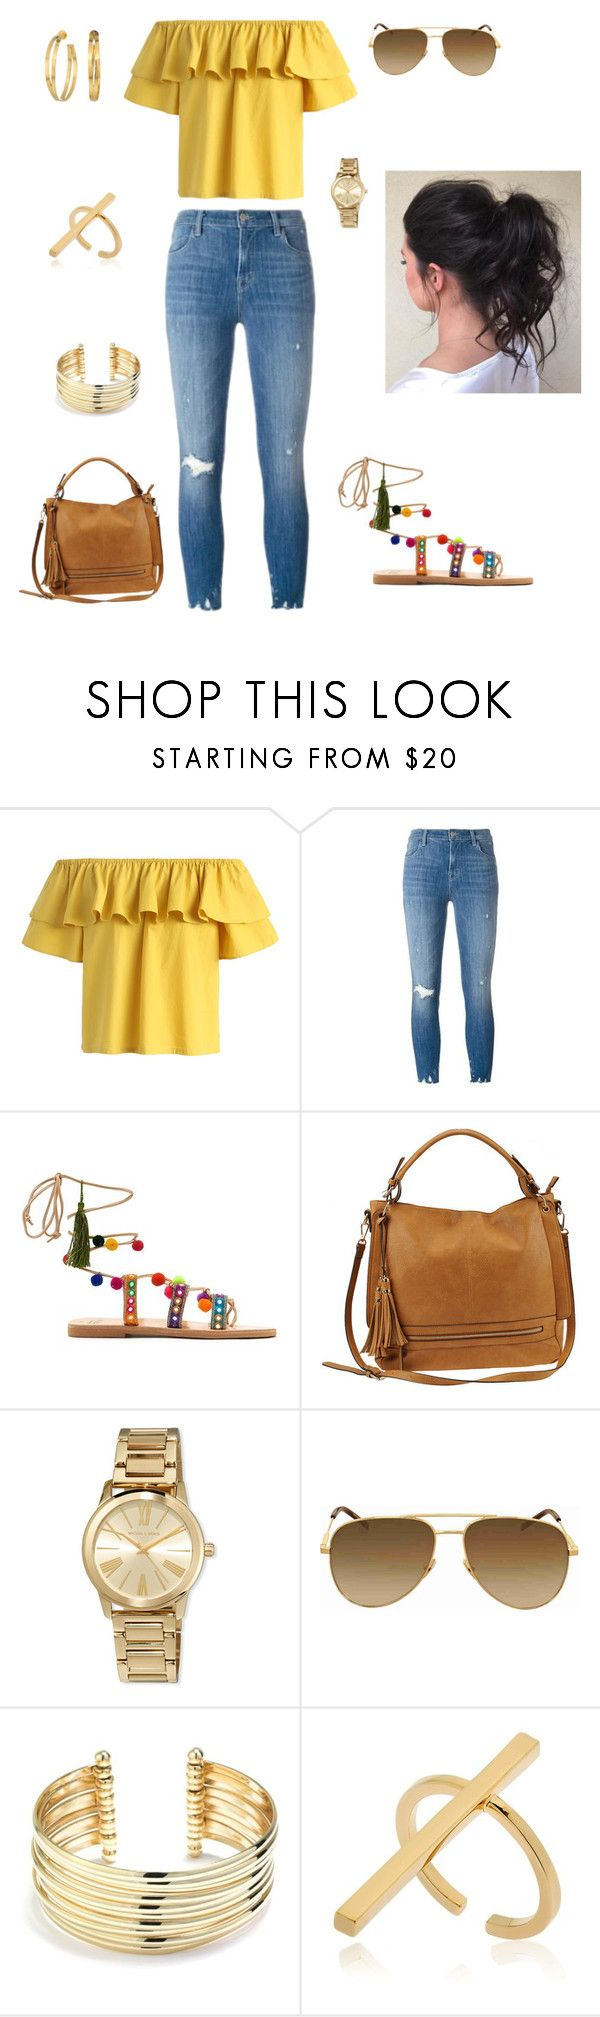 Sunshine - by @suebmoe by suebmoe on Polyvore featuring Chicwish, J Brand, Mabu, Urban Expressions, Yves Saint Laurent, Belk Silverworks, Schield Collection, Tory Burch and MICHAEL Michael Kors